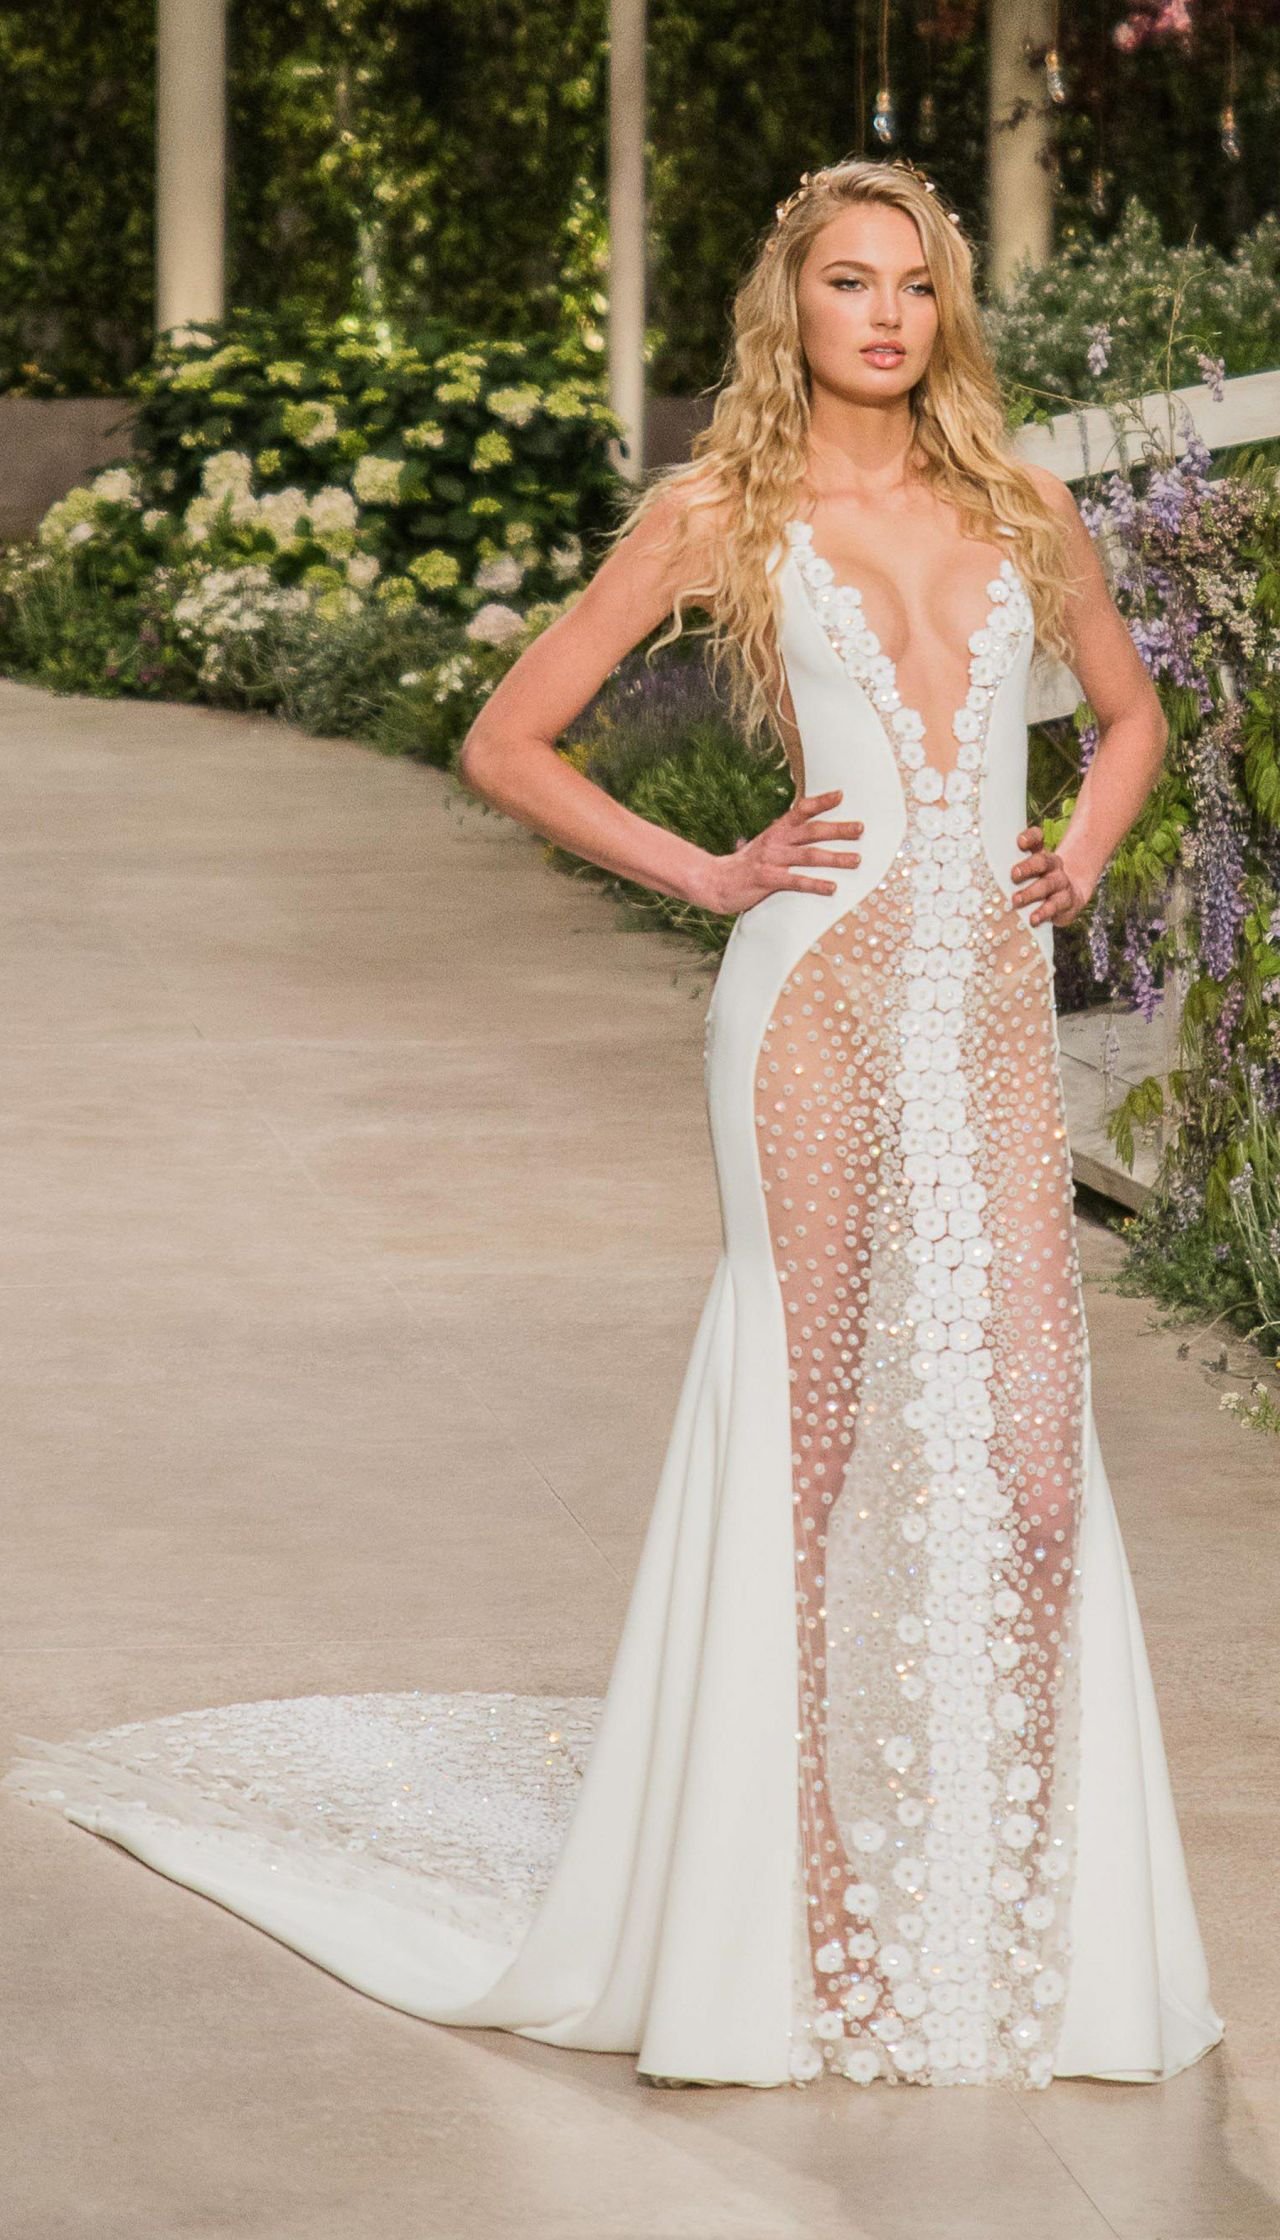 65177cec2dd Romee Strijd - Rehearsal for Atelier Pronovias 2019 Collection in Barcelona